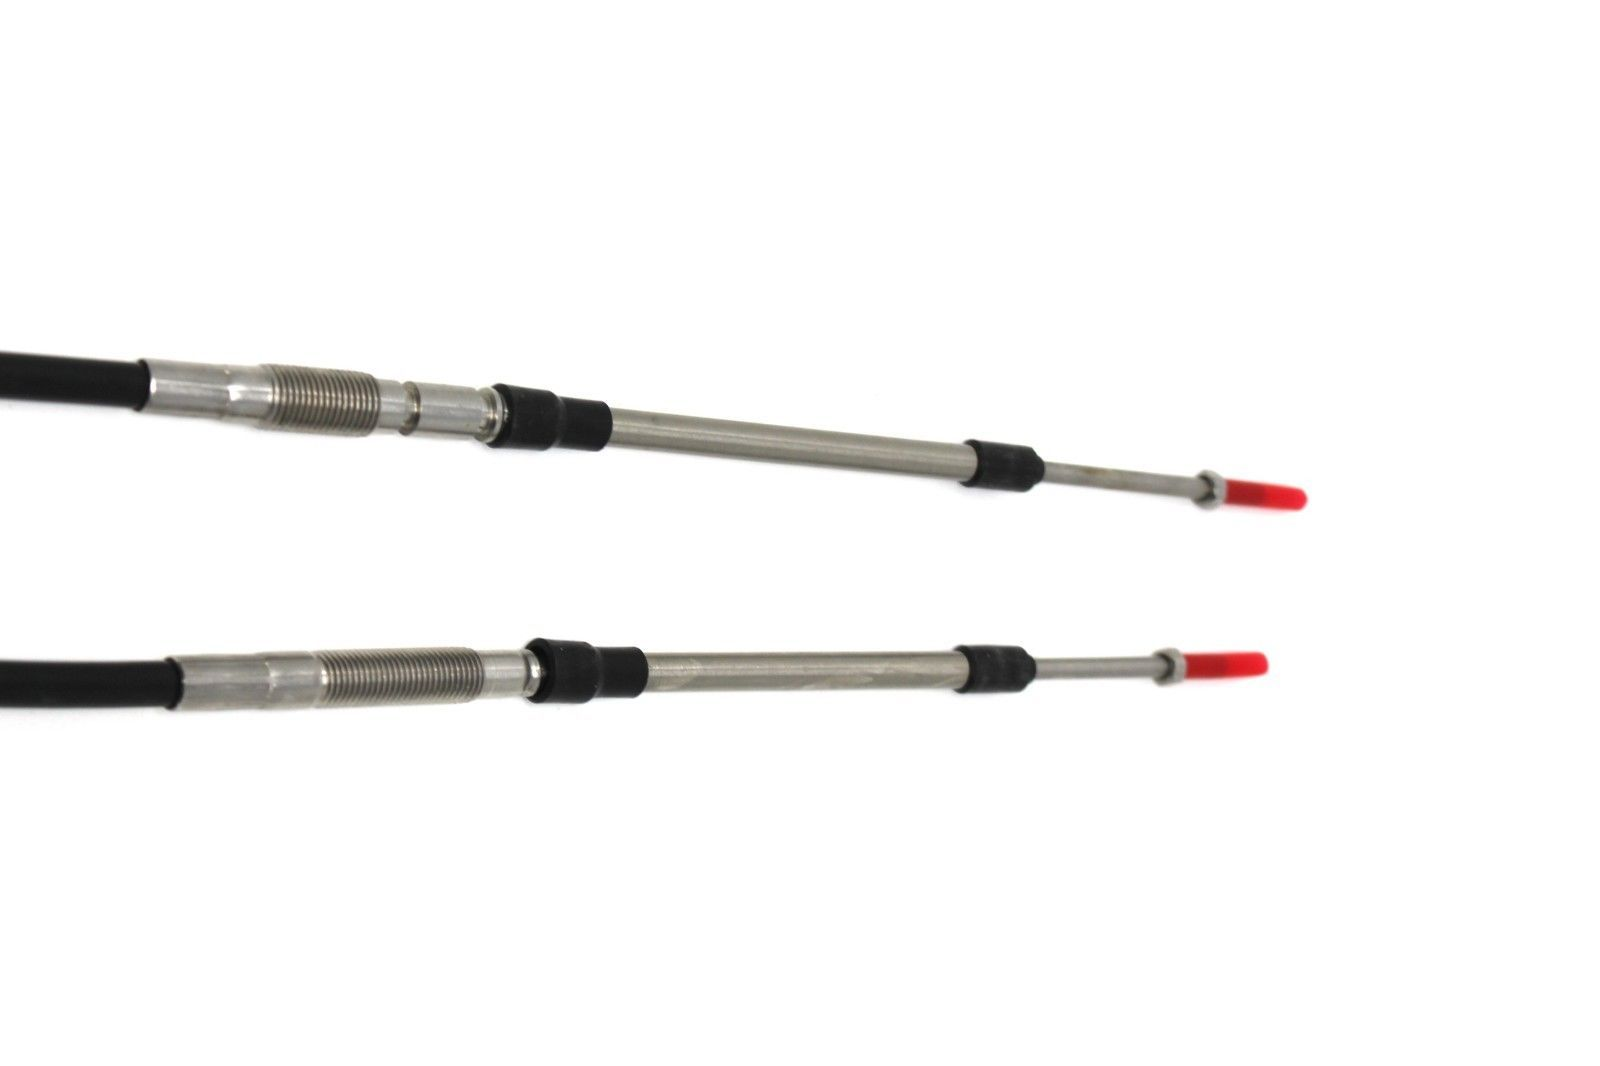 JSP Replacement Seadoo Steering Cable GTX DI/GTX 4TEC/155/215 RXT